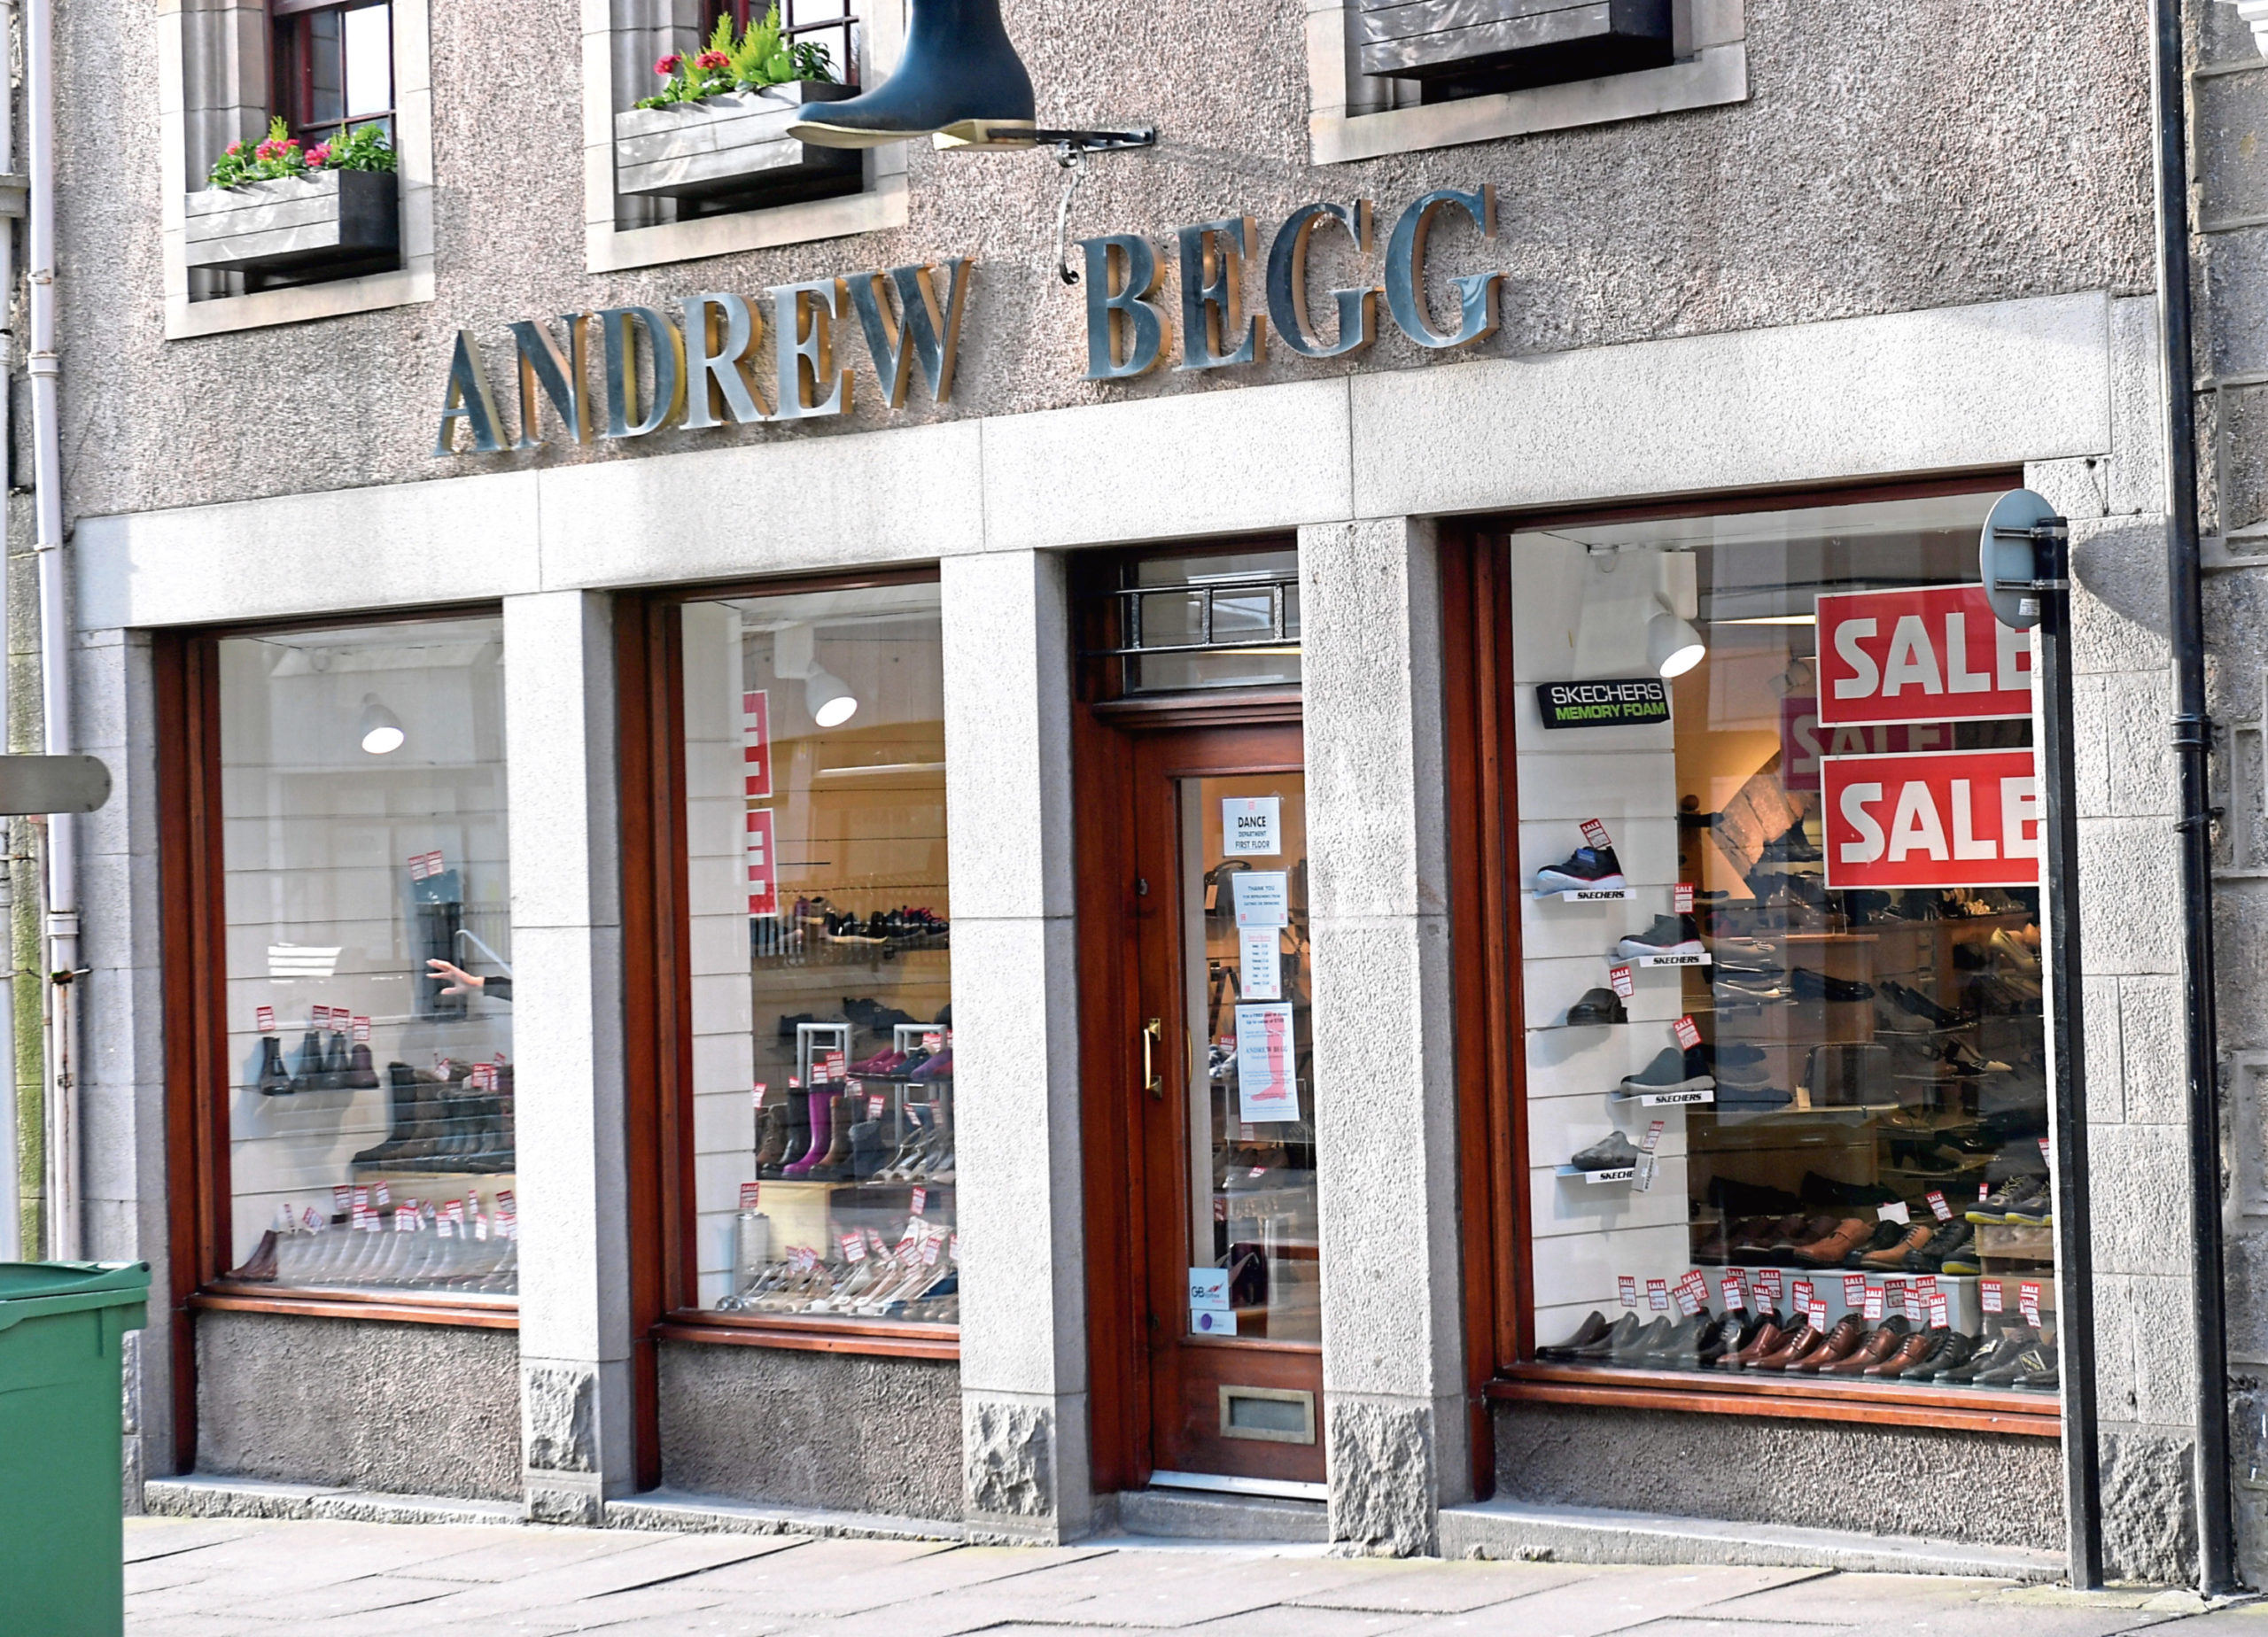 Andrew Begg on Upper Kirkgate